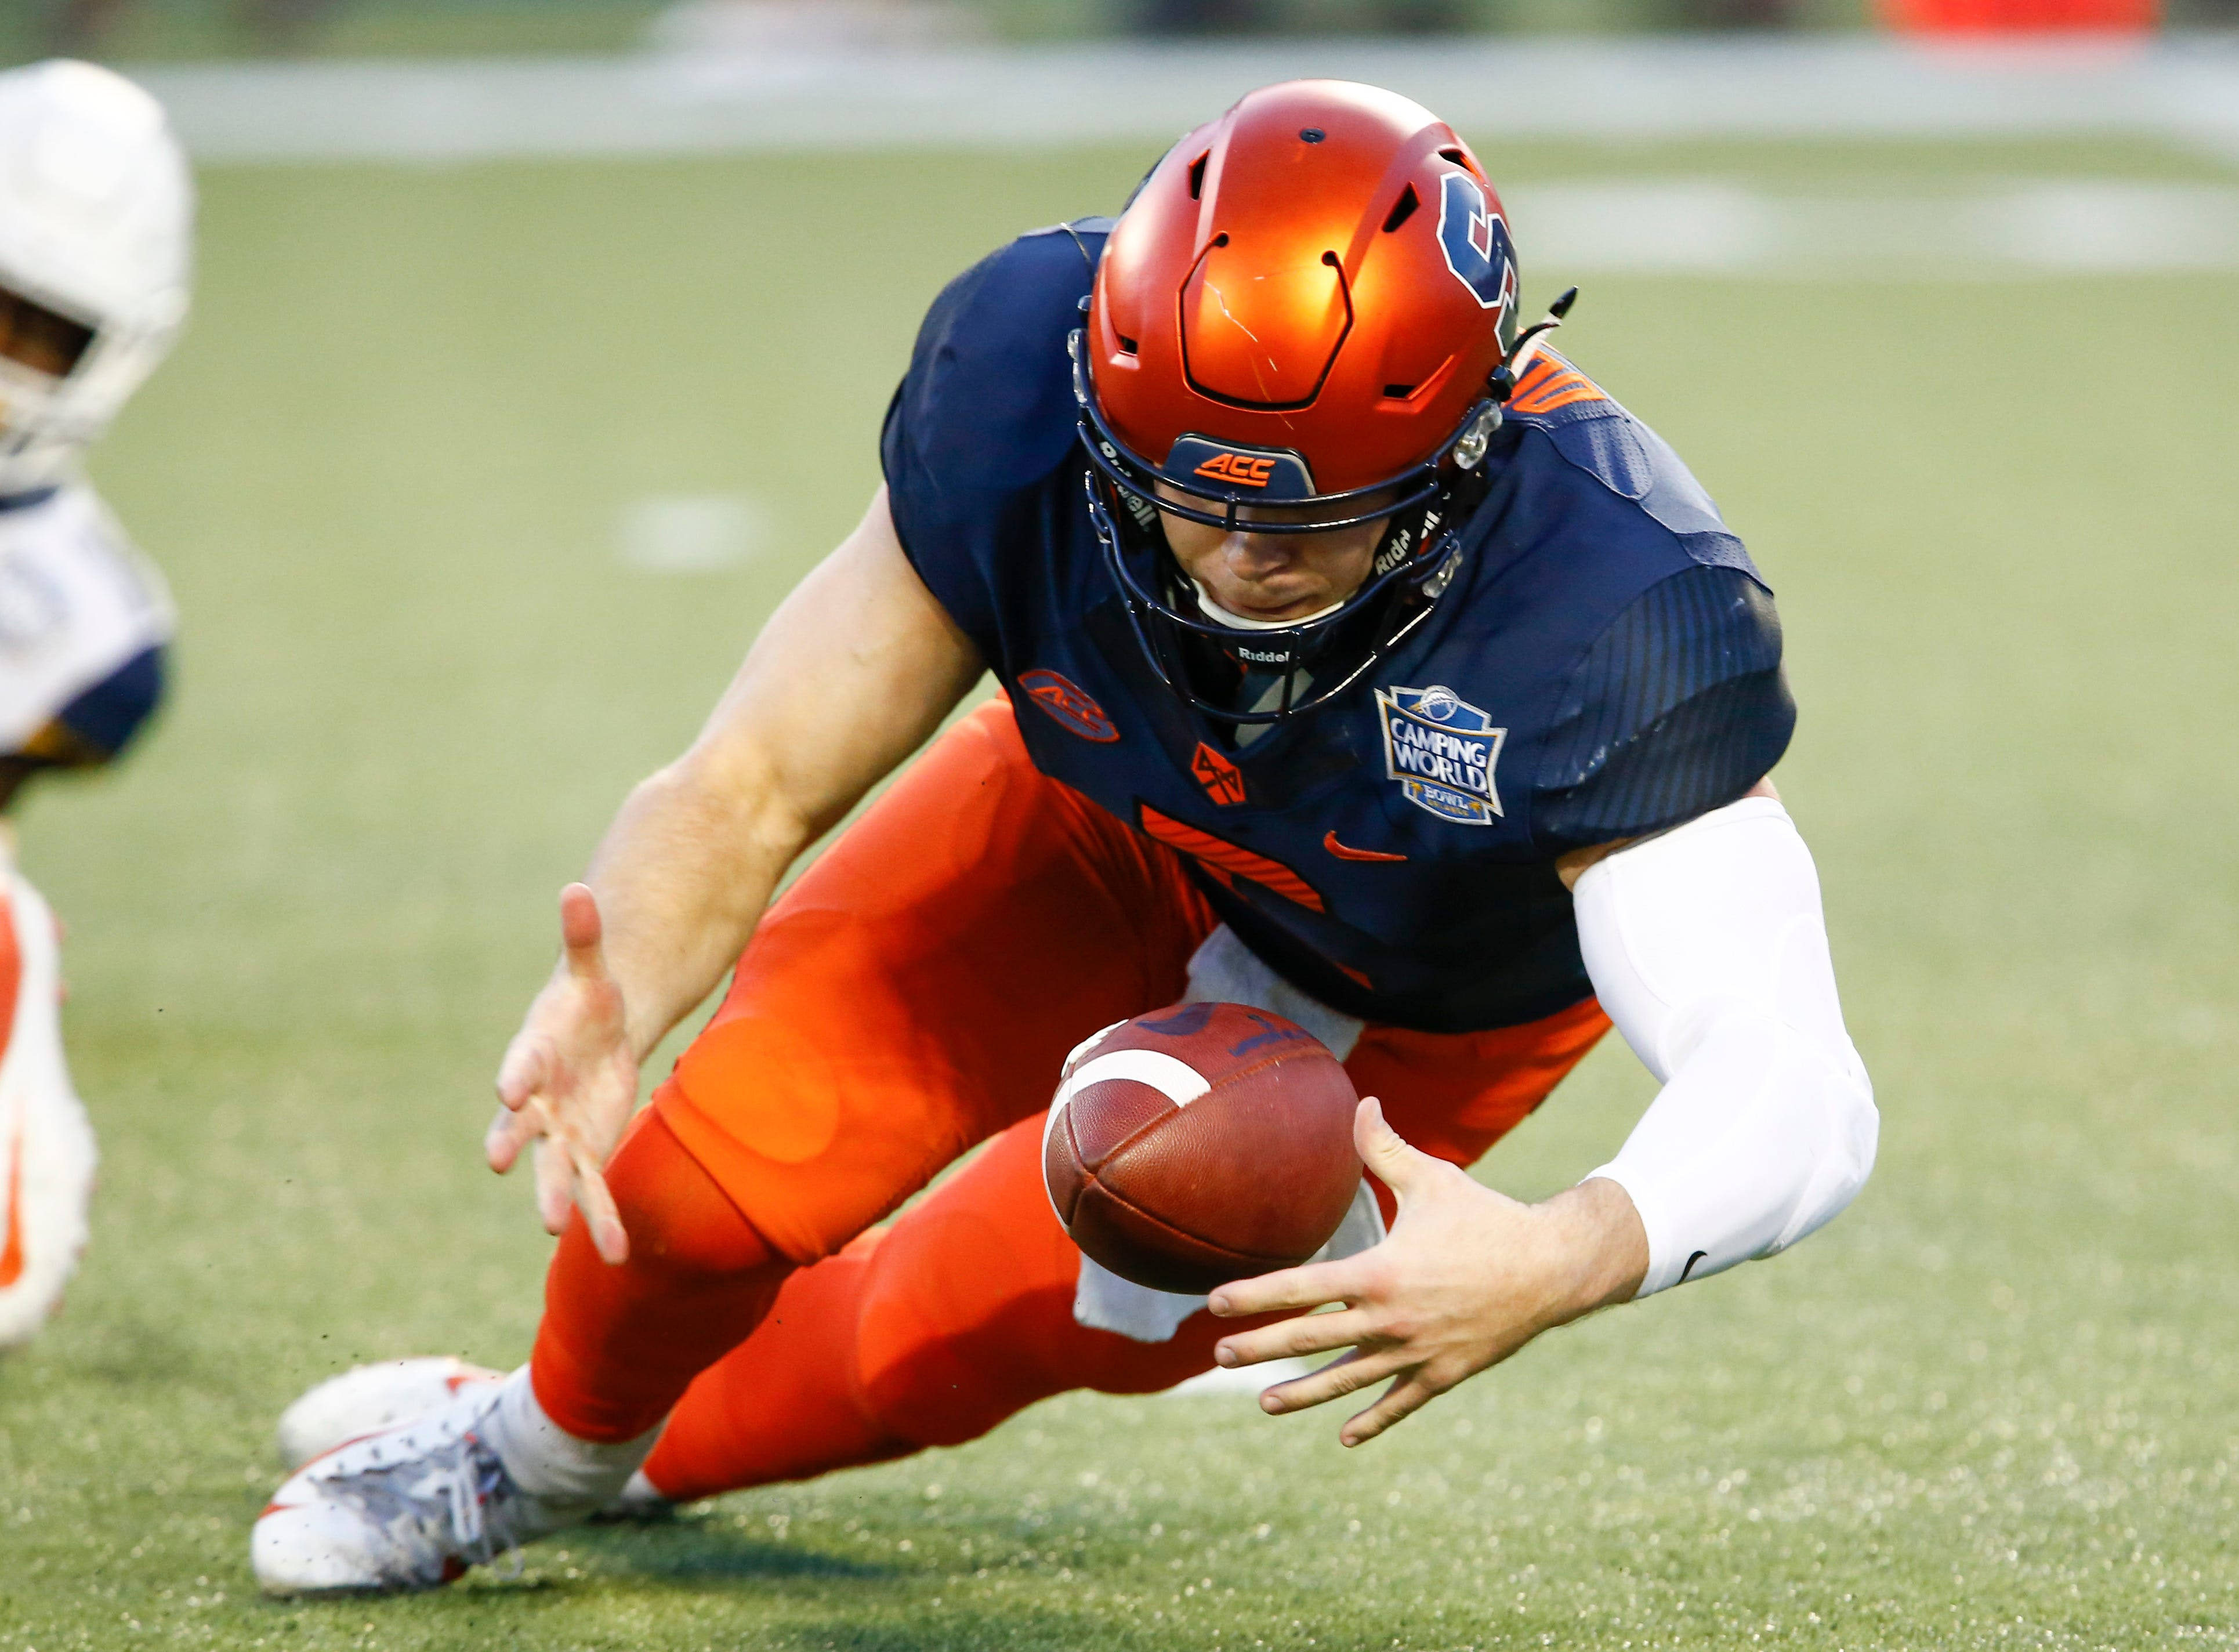 Syracuse Orange quarterback Eric Dungey (2) picks up a loose ball during the first quarter against the West Virginia Mountaineers in the Camping World Bowl.